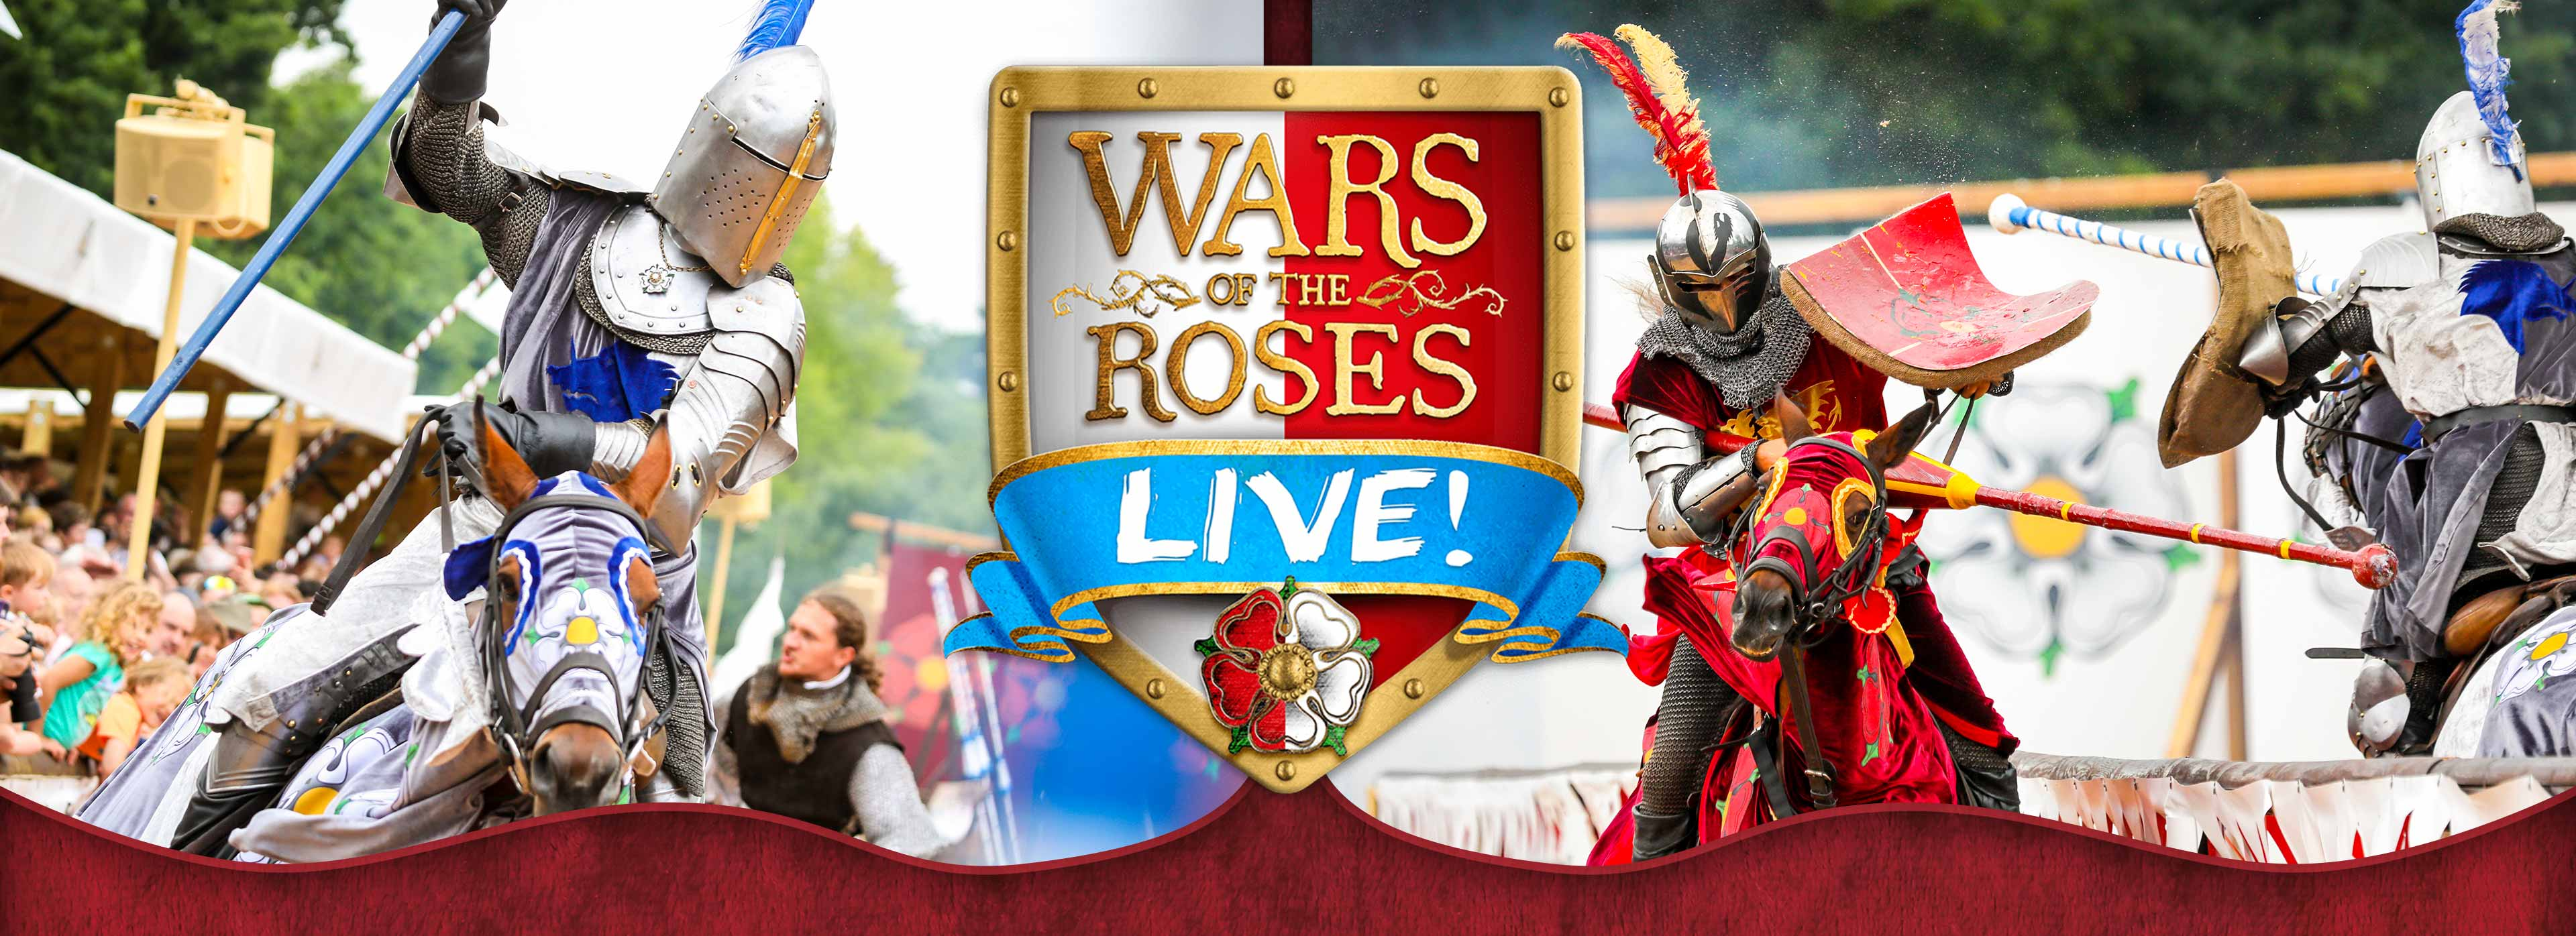 Wars of The Roses at Warwick Castle in 2019